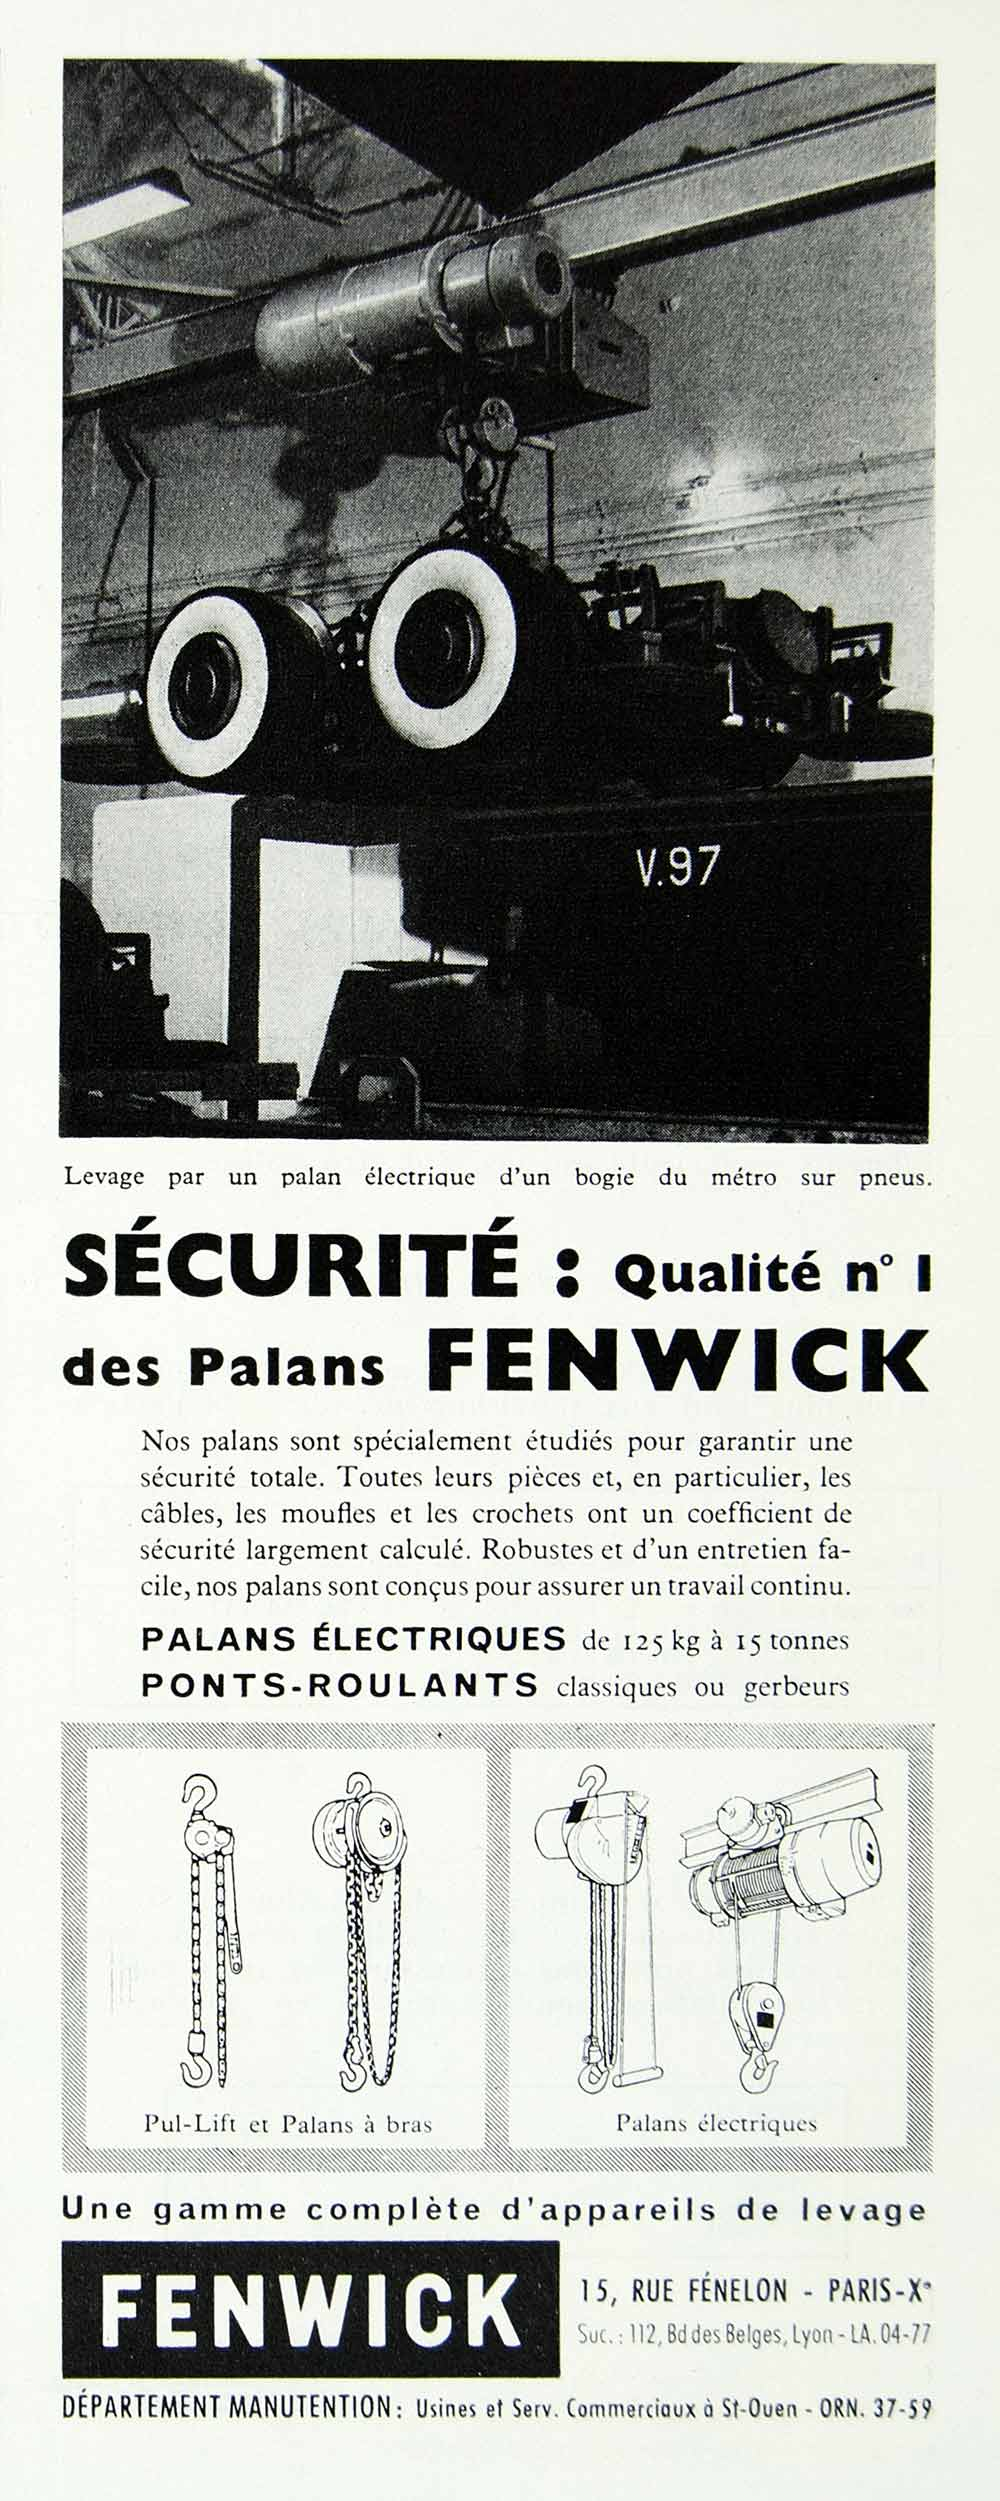 1958 Ad Fenwick Security Pulley French Fenelon Lift Leverage Manutention VEN1